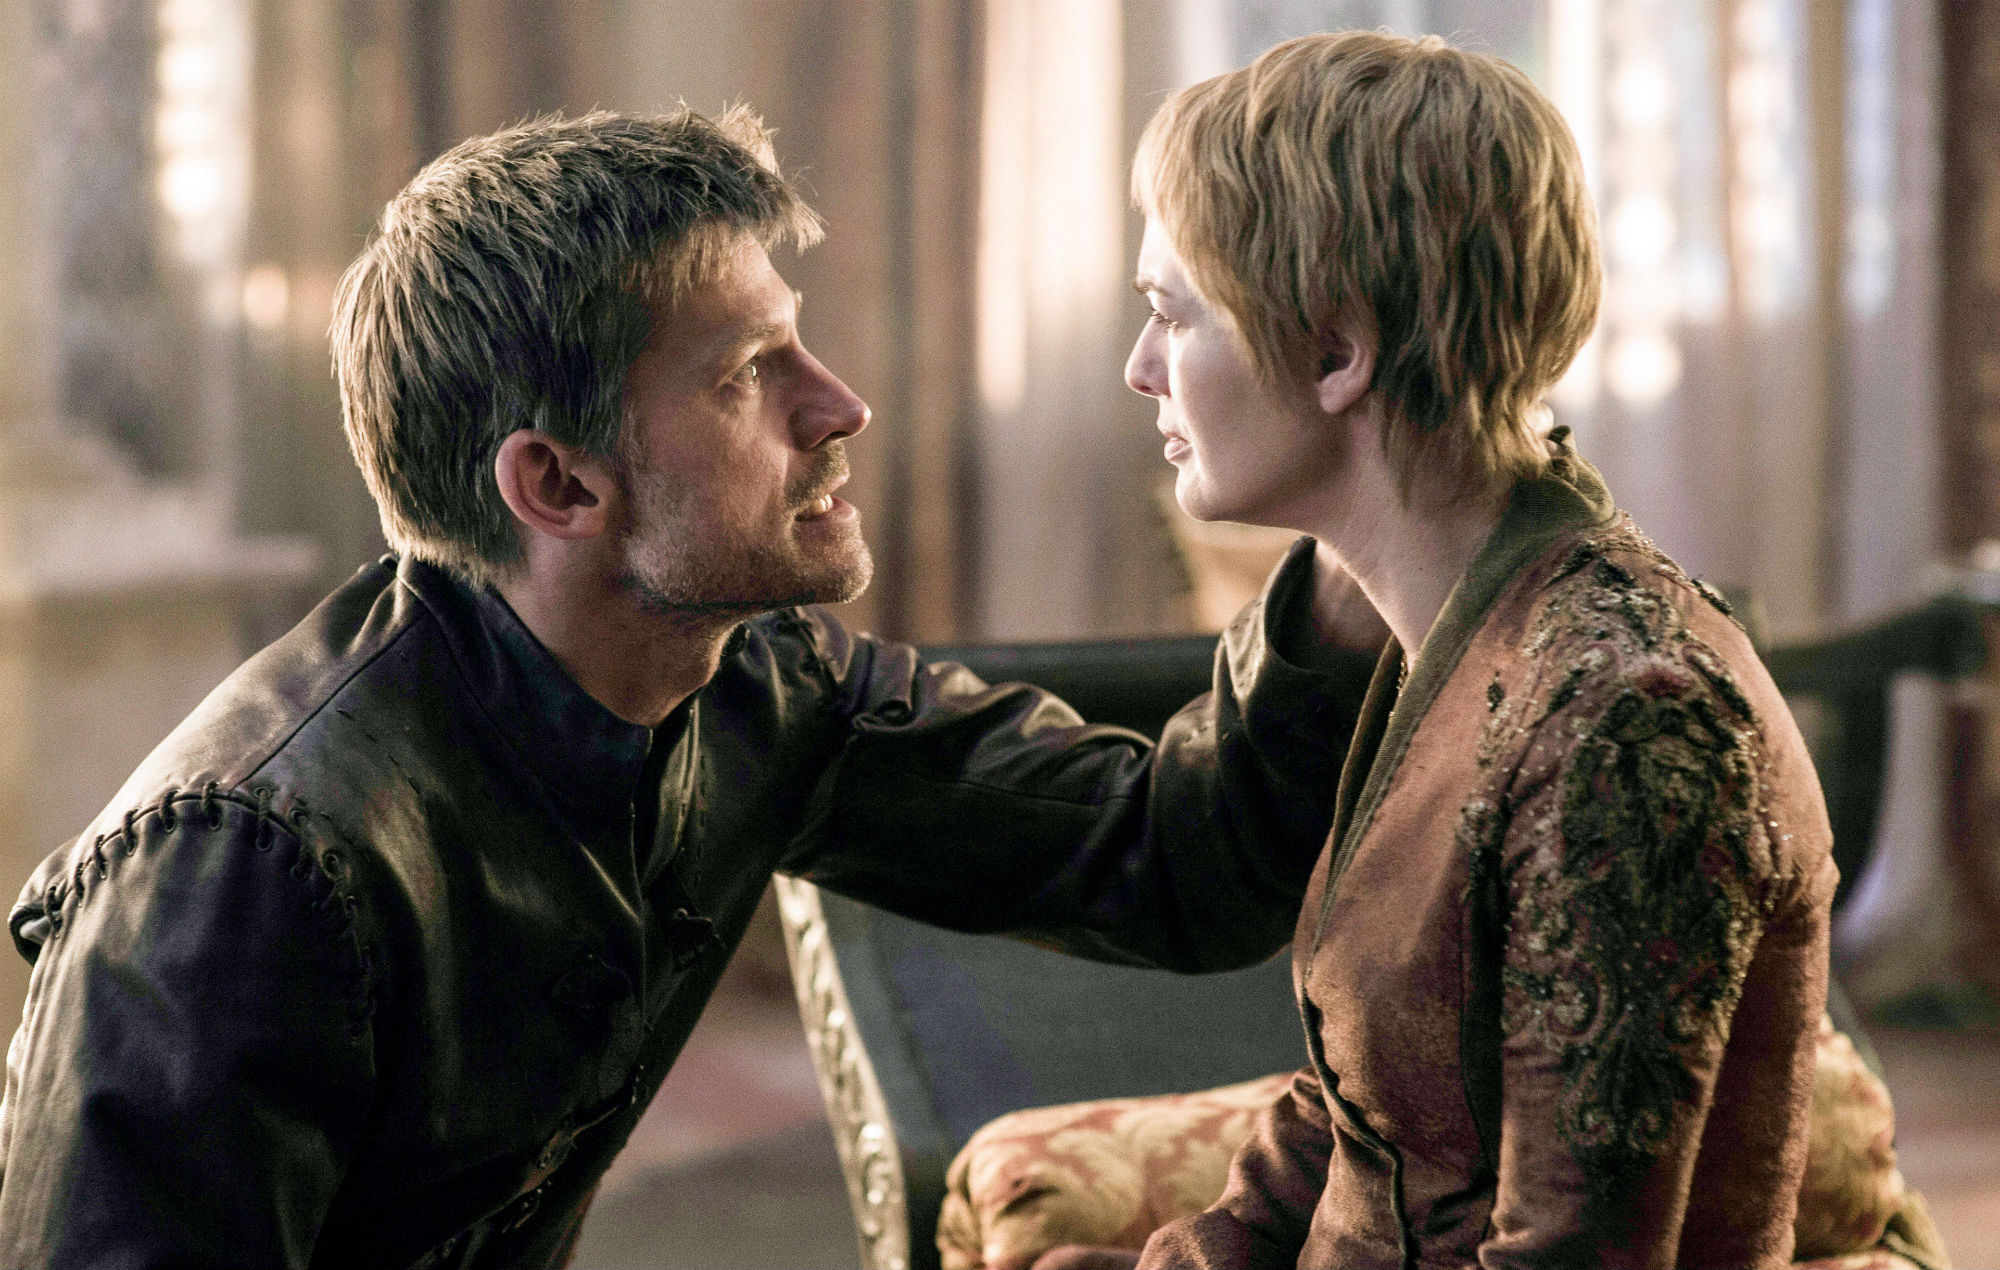 'Game of Thrones' star Nikolaj Coster-Waldau is returning to television